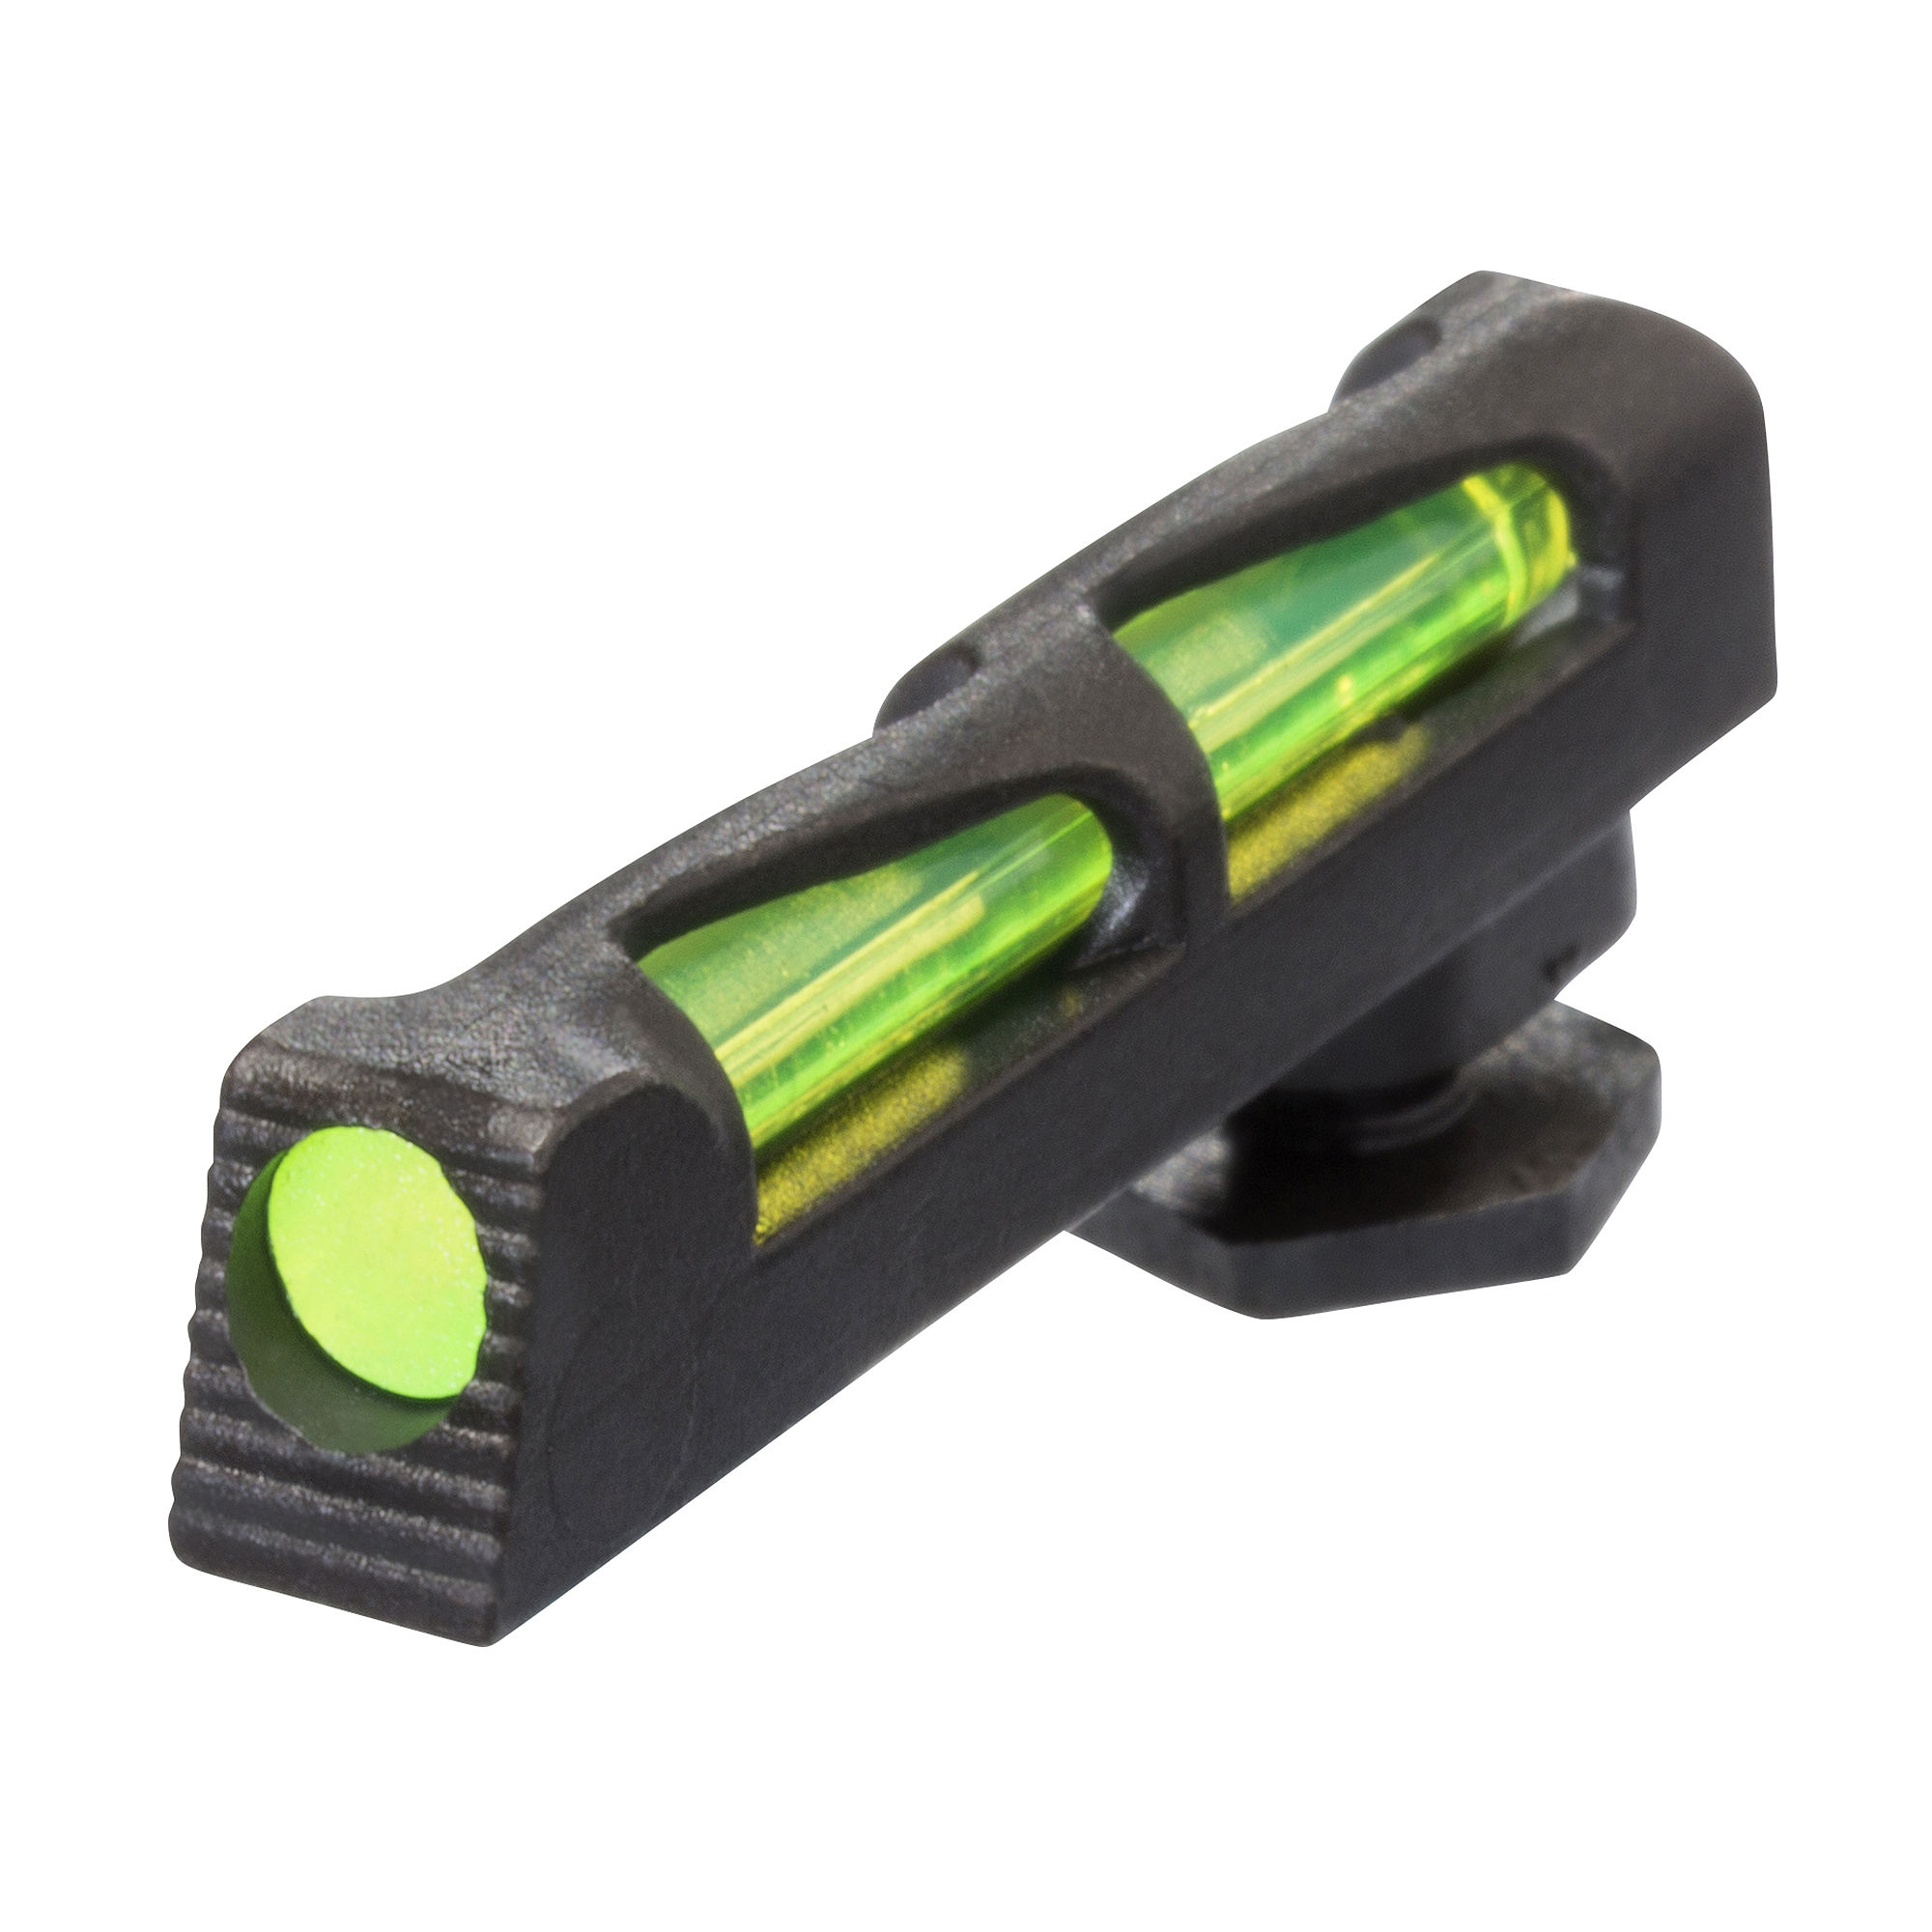 "HIVIZ(R) LiteWave(R) Front Sight for Glock pistols. Fits all Glock models. Includes Green"" Red and White replaceable LitePipes."